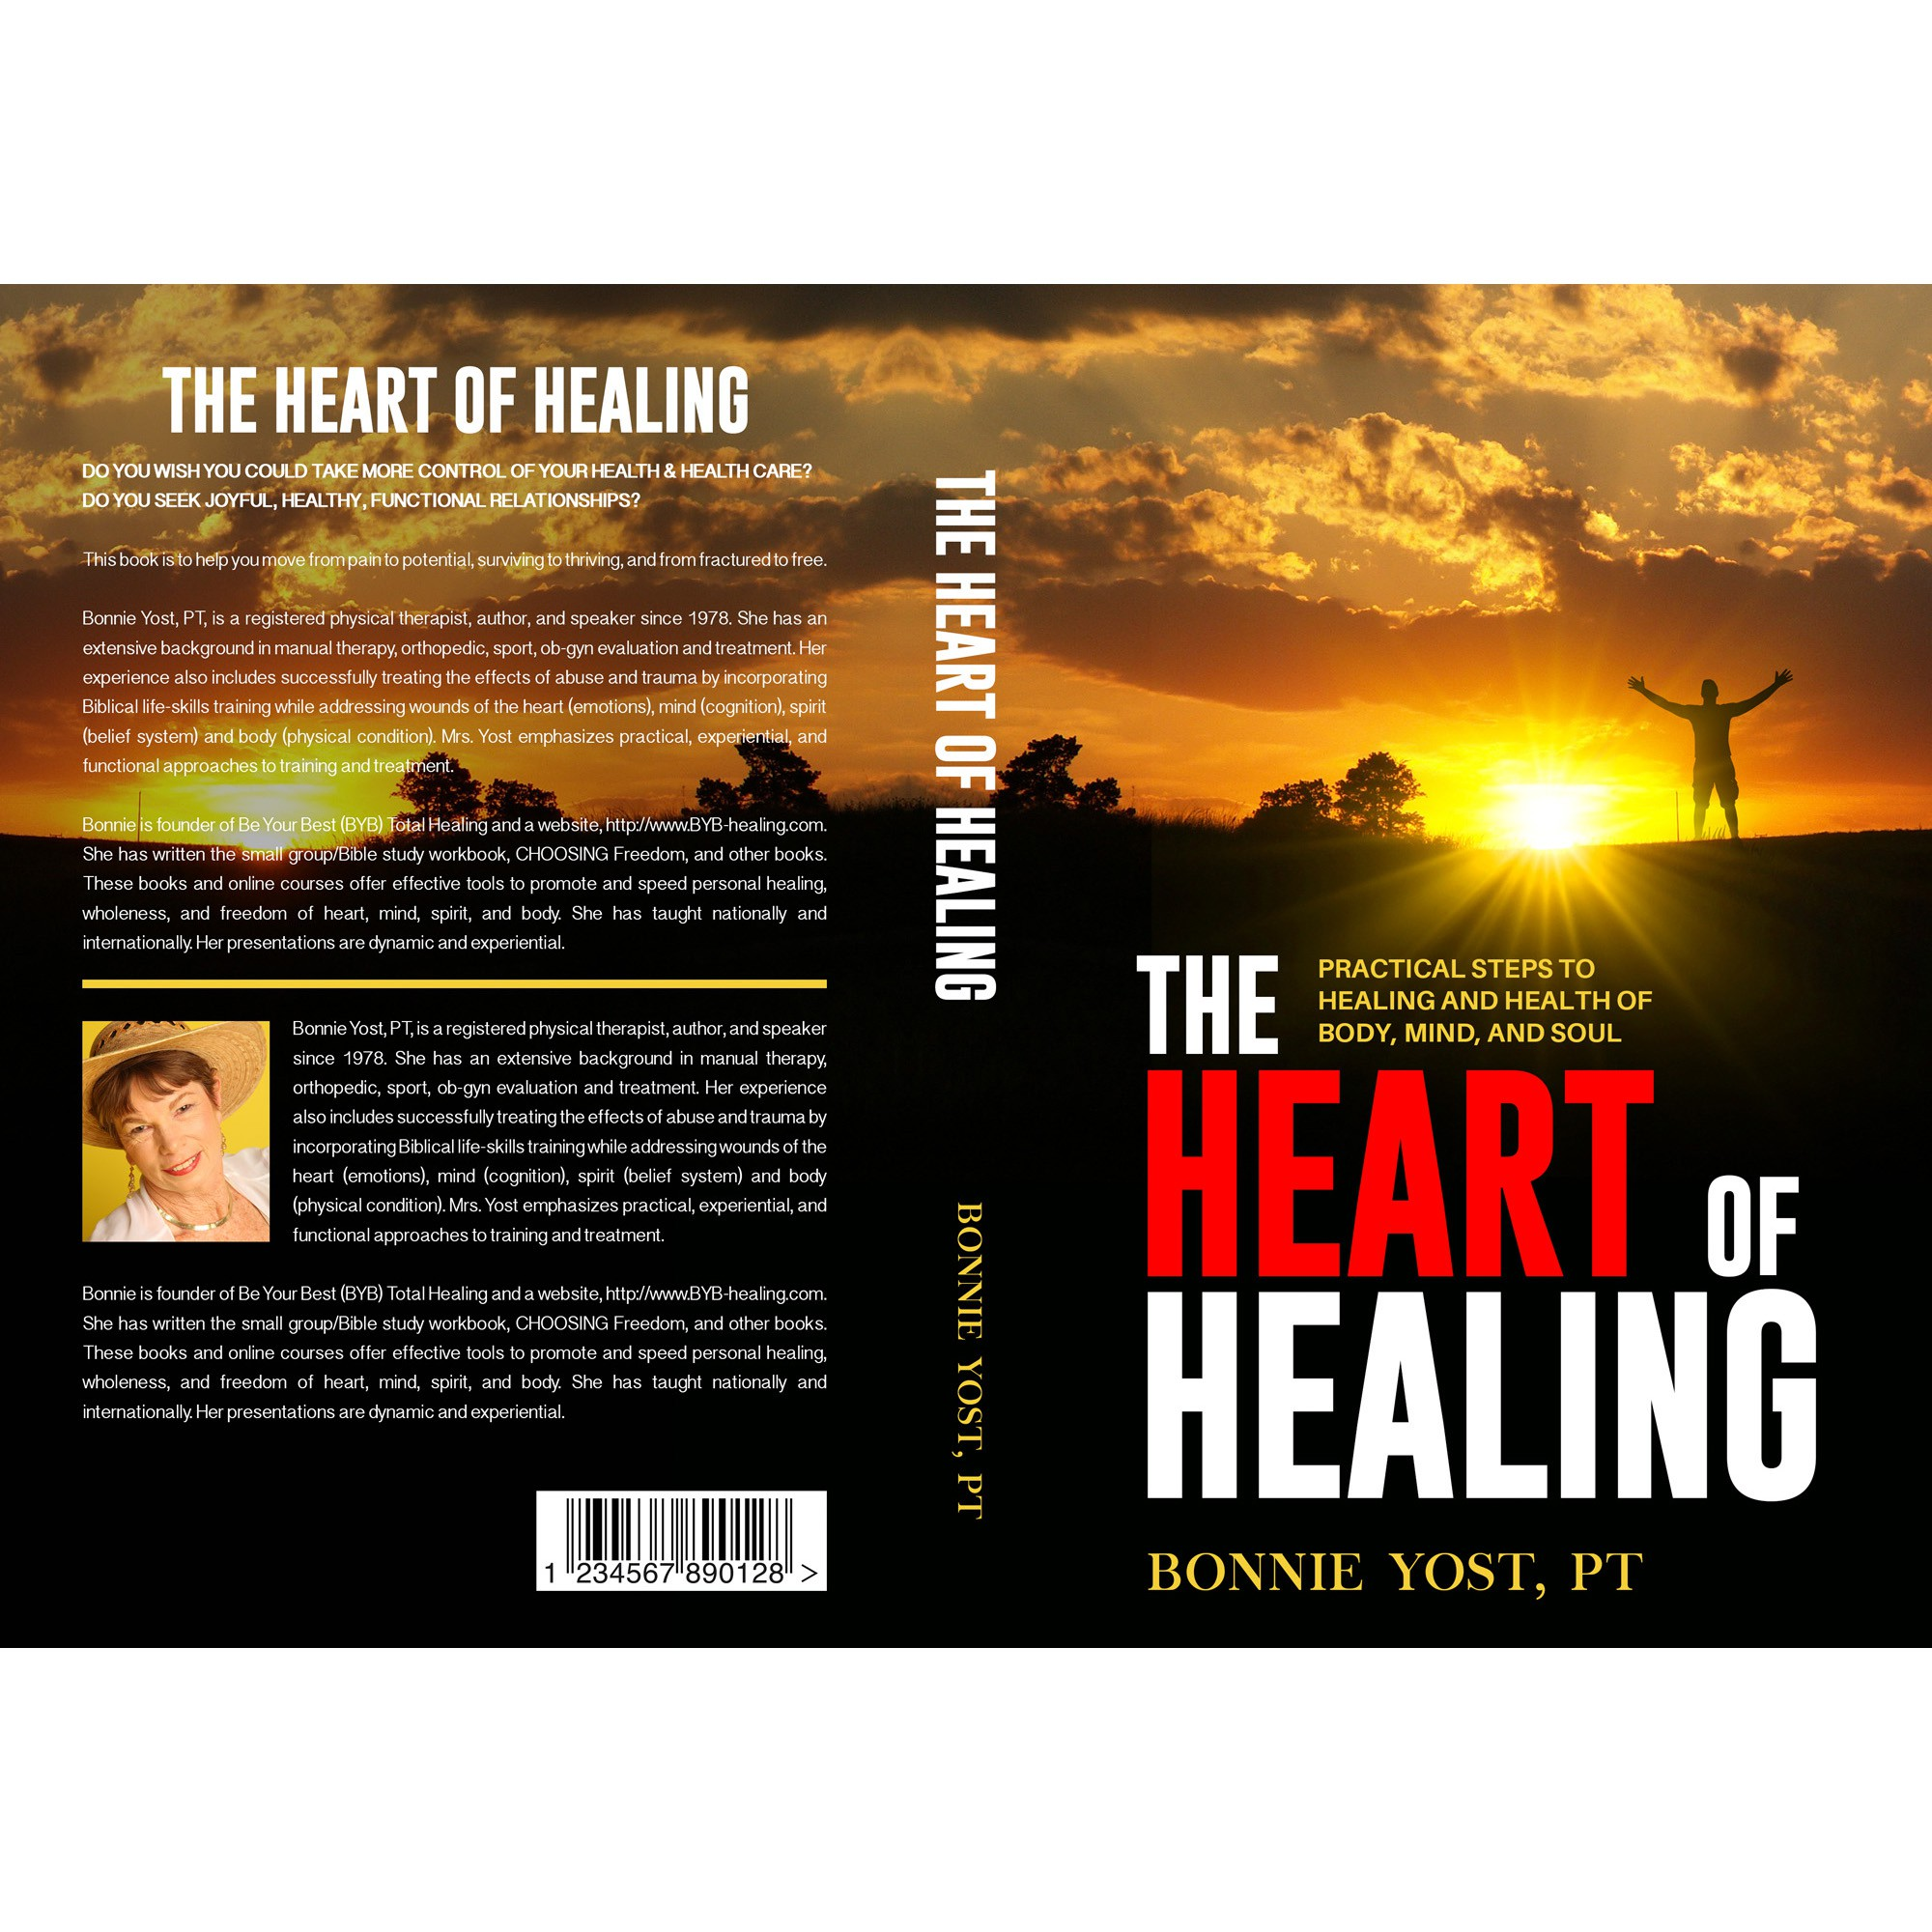 """The Heart of Healing"" book needs a catchy cover that gives hope to the hurting."